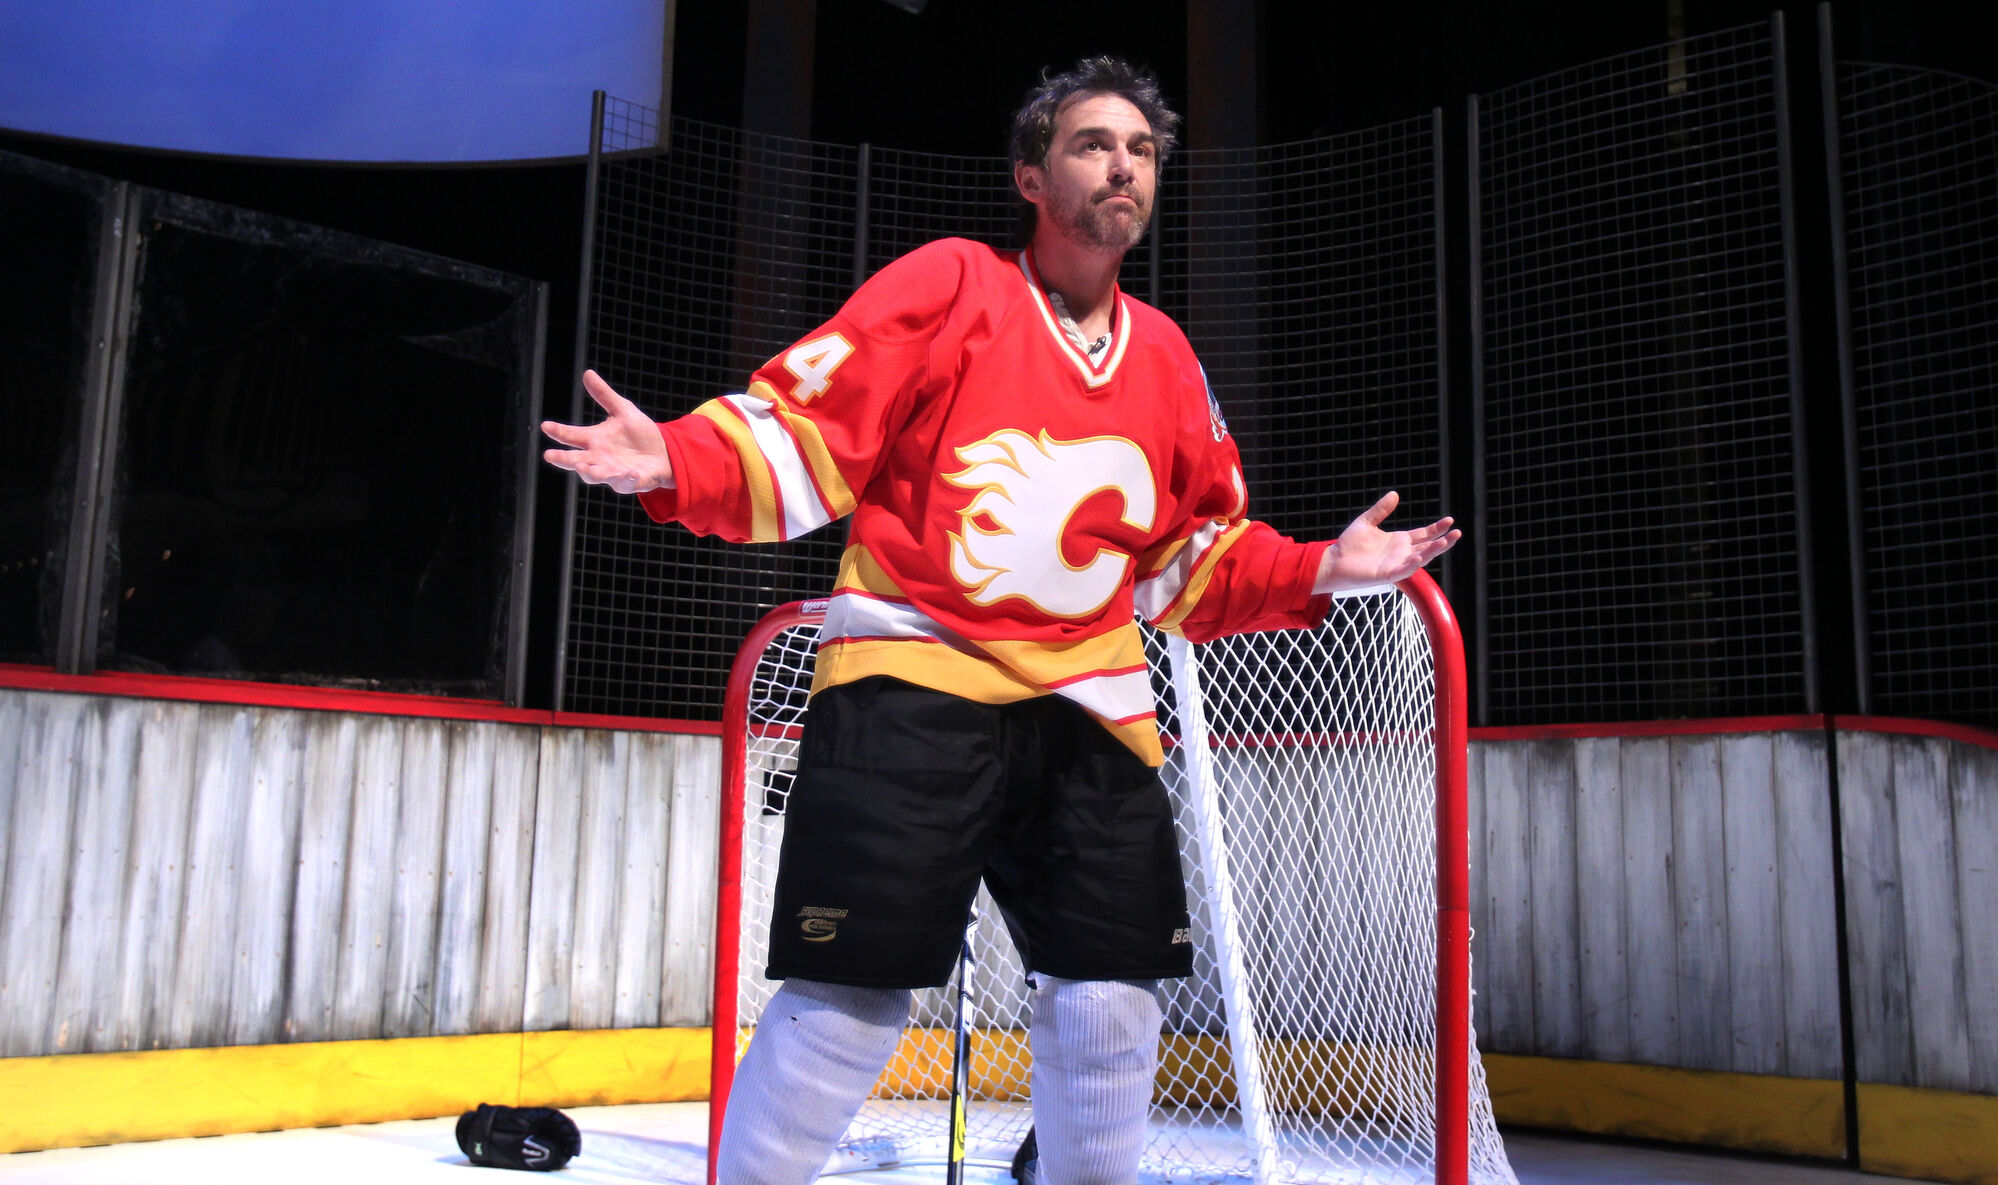 Shaun Smyth  from a scene from the play called Playing With Fire: The Theo Fleury Story. The play is set to open in Winnipeg next February, the Prairie Theatre Exchange announced Thursday.